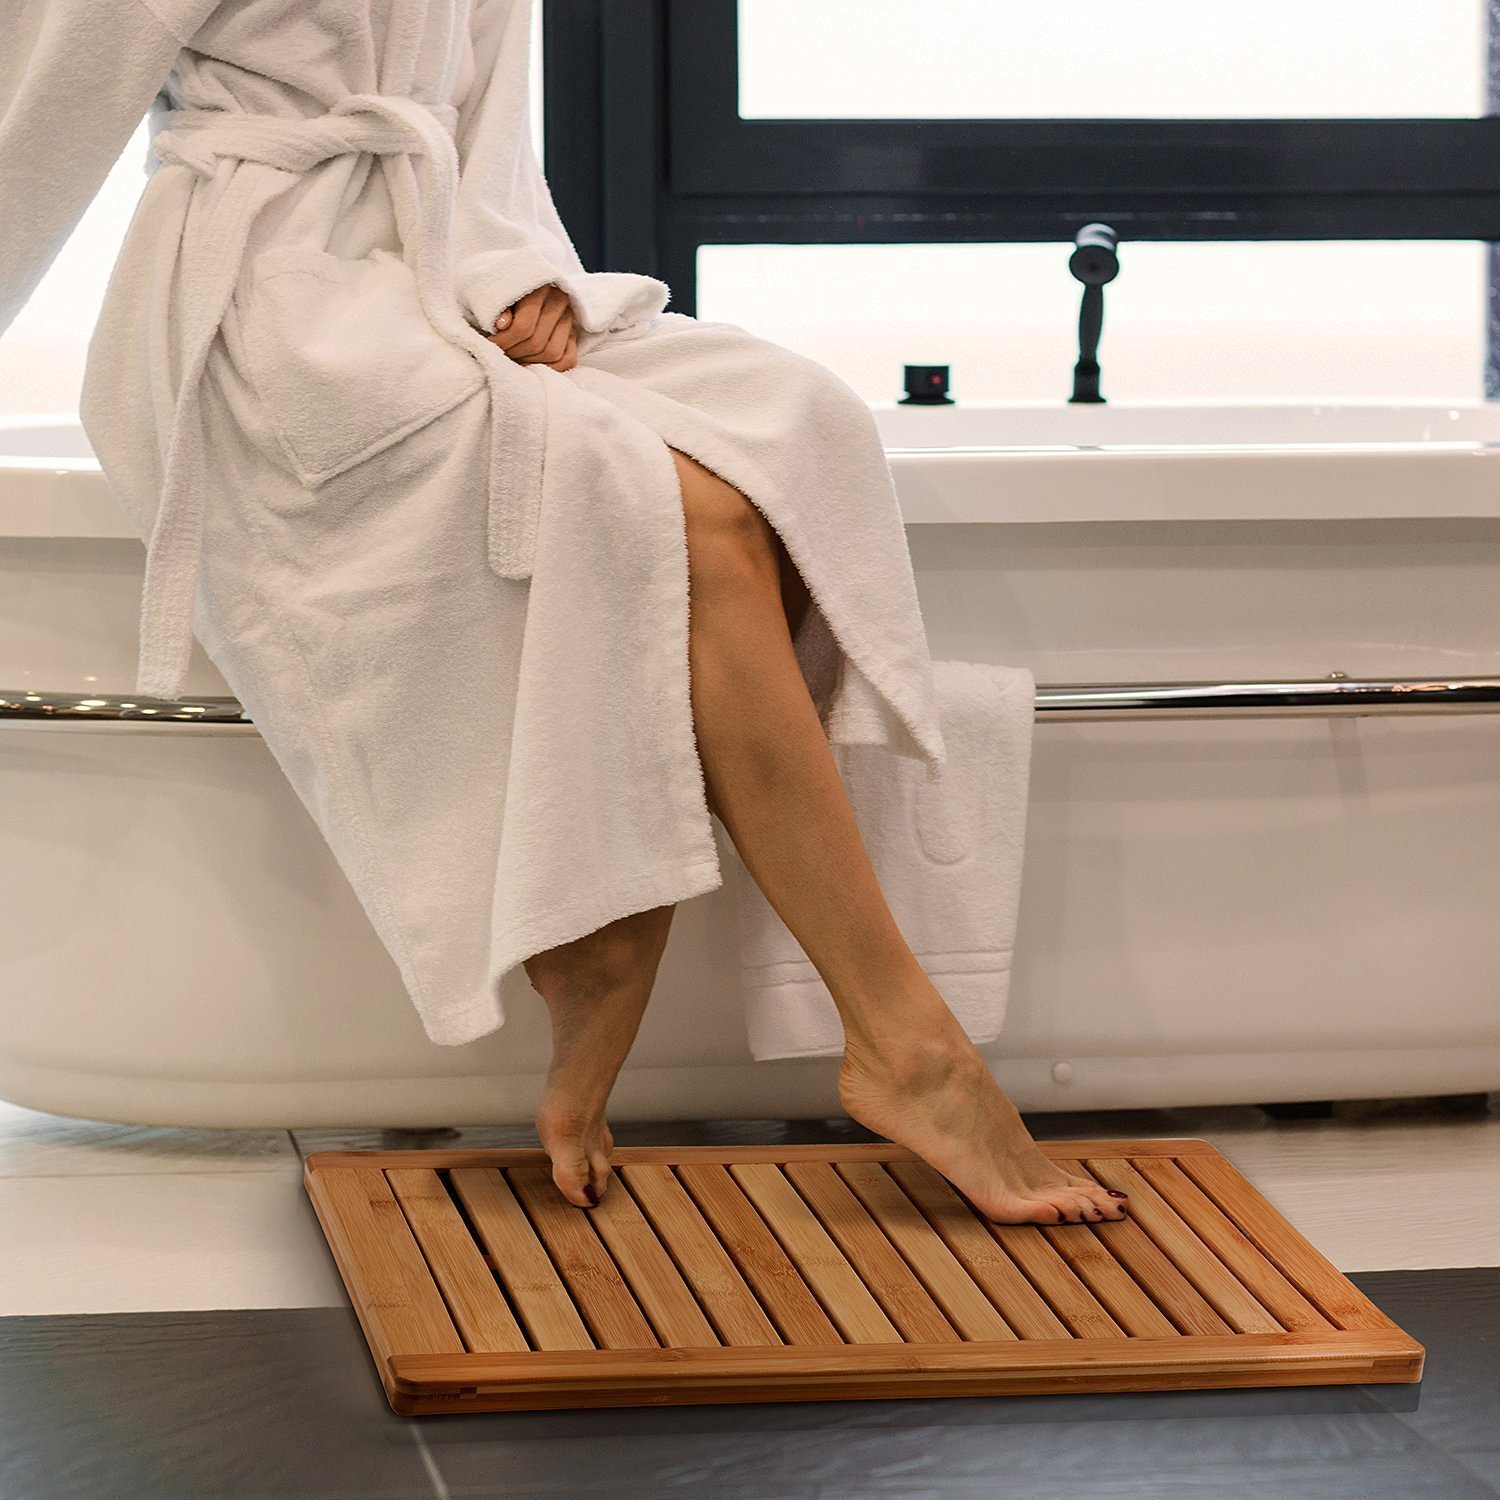 Bambüsi Bath Shower Floor Mat Non Slip, Made of 100% Natural Bamboo, 23